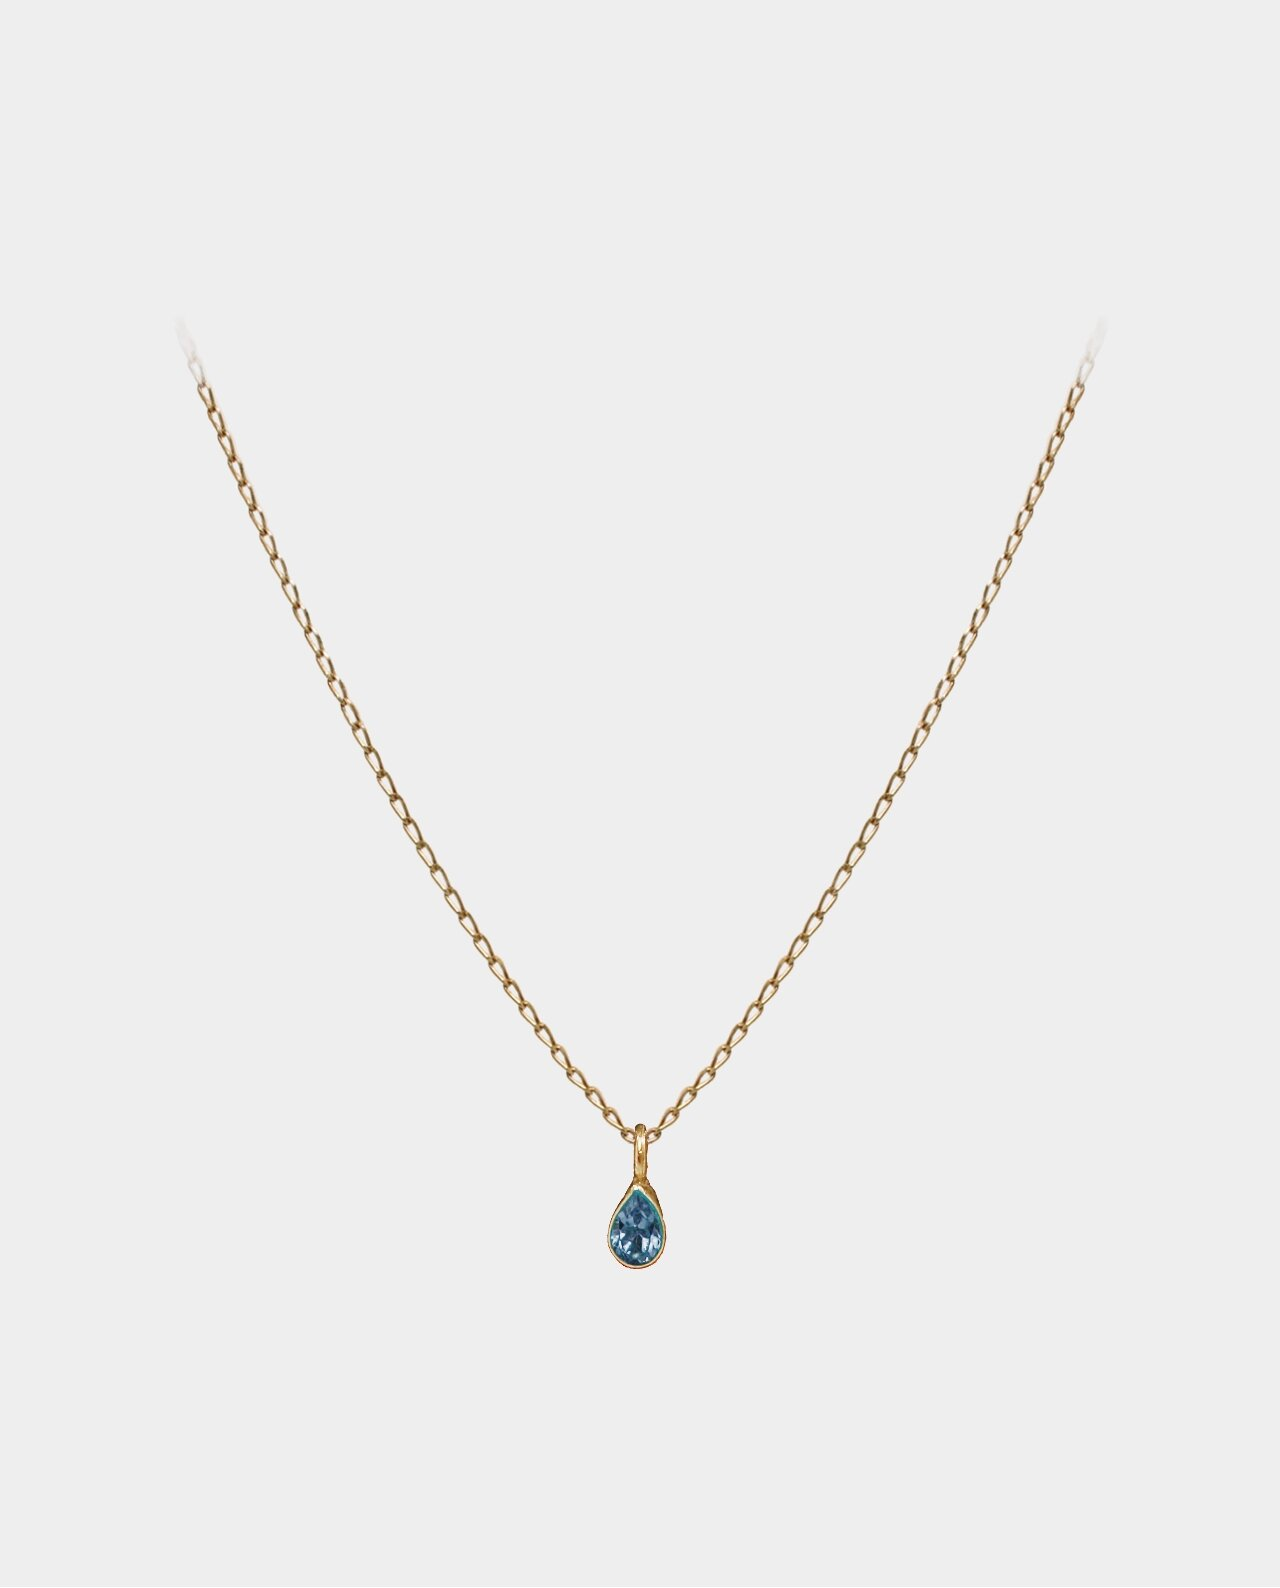 Necklace with blue topaz pendant whose reflections of light in the bevels of the jewelry are compelling